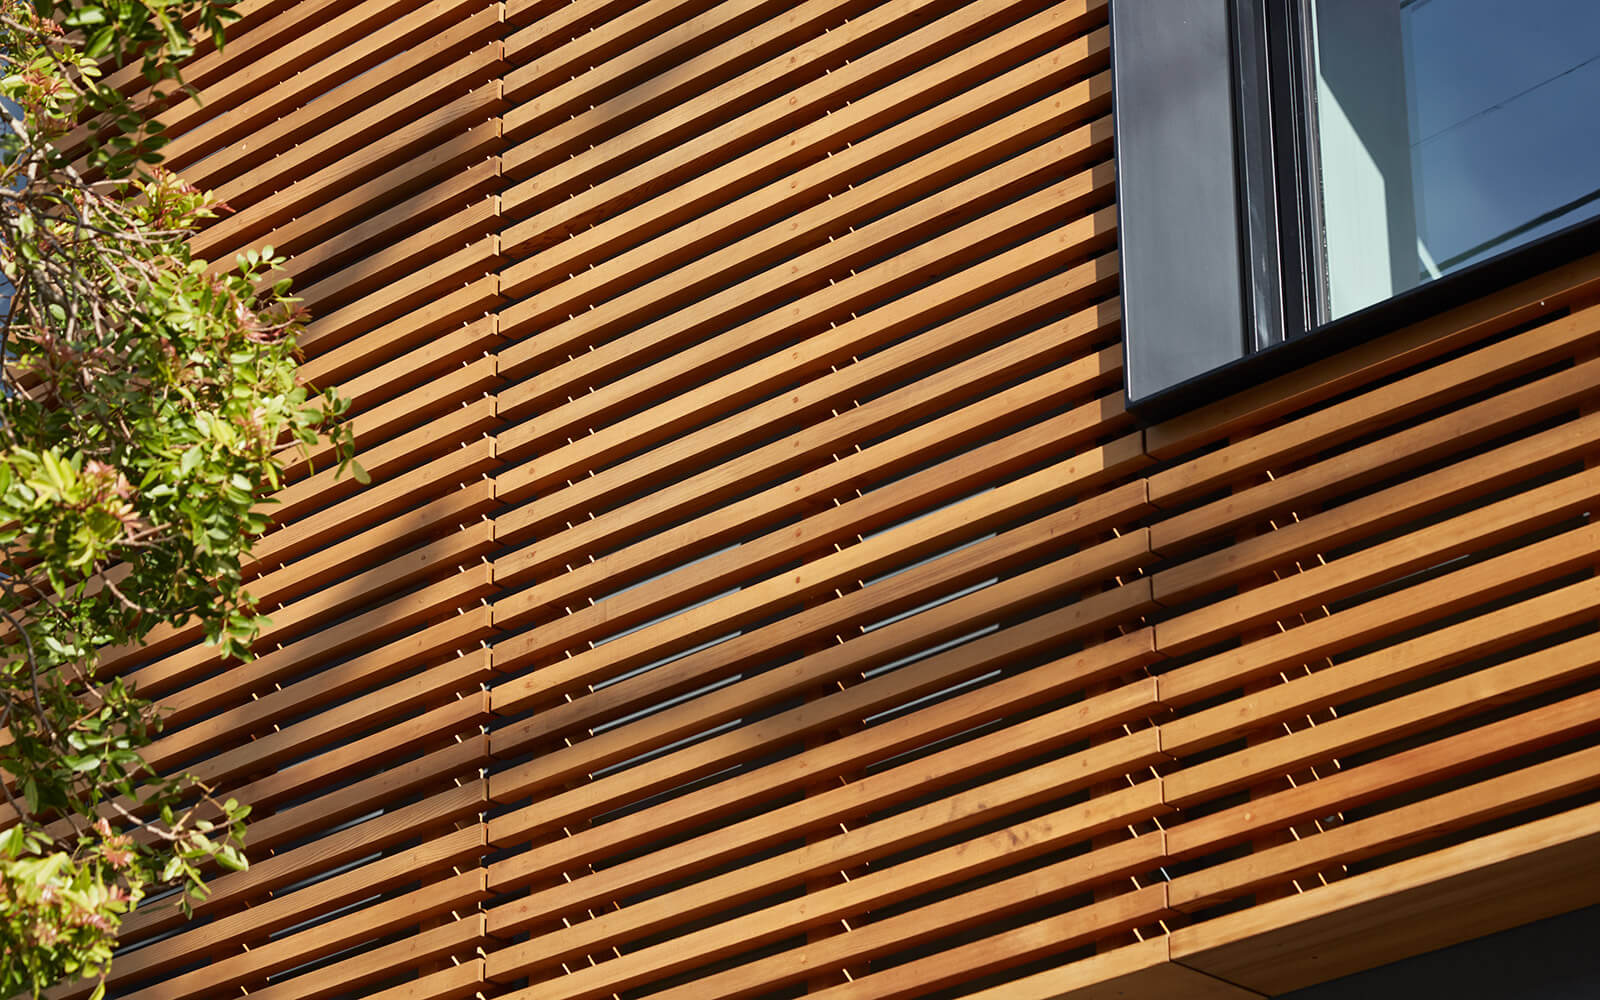 studio vara residential noe wood siding window